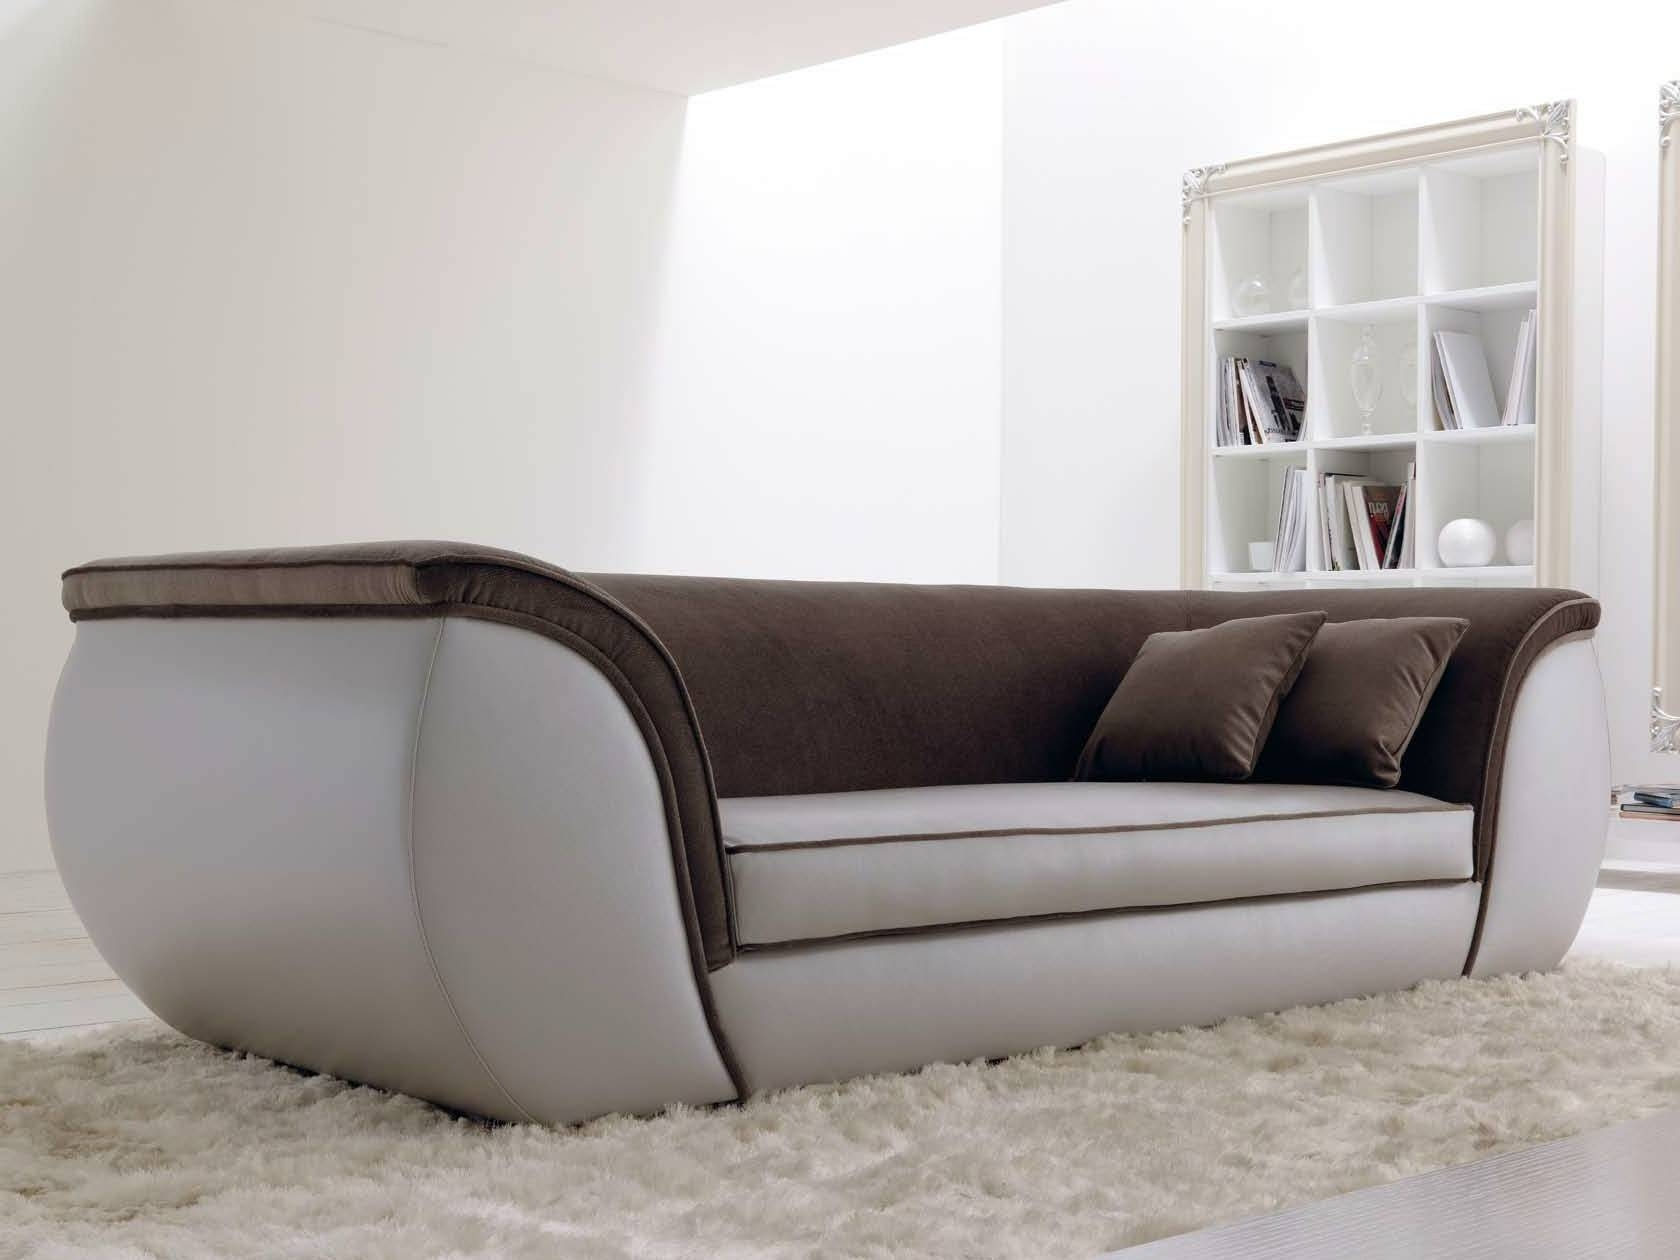 3 Seater Leather Sofa Lapo Quiltcortezari Intended For 3 Seater Leather Sofas (Photo 23 of 30)